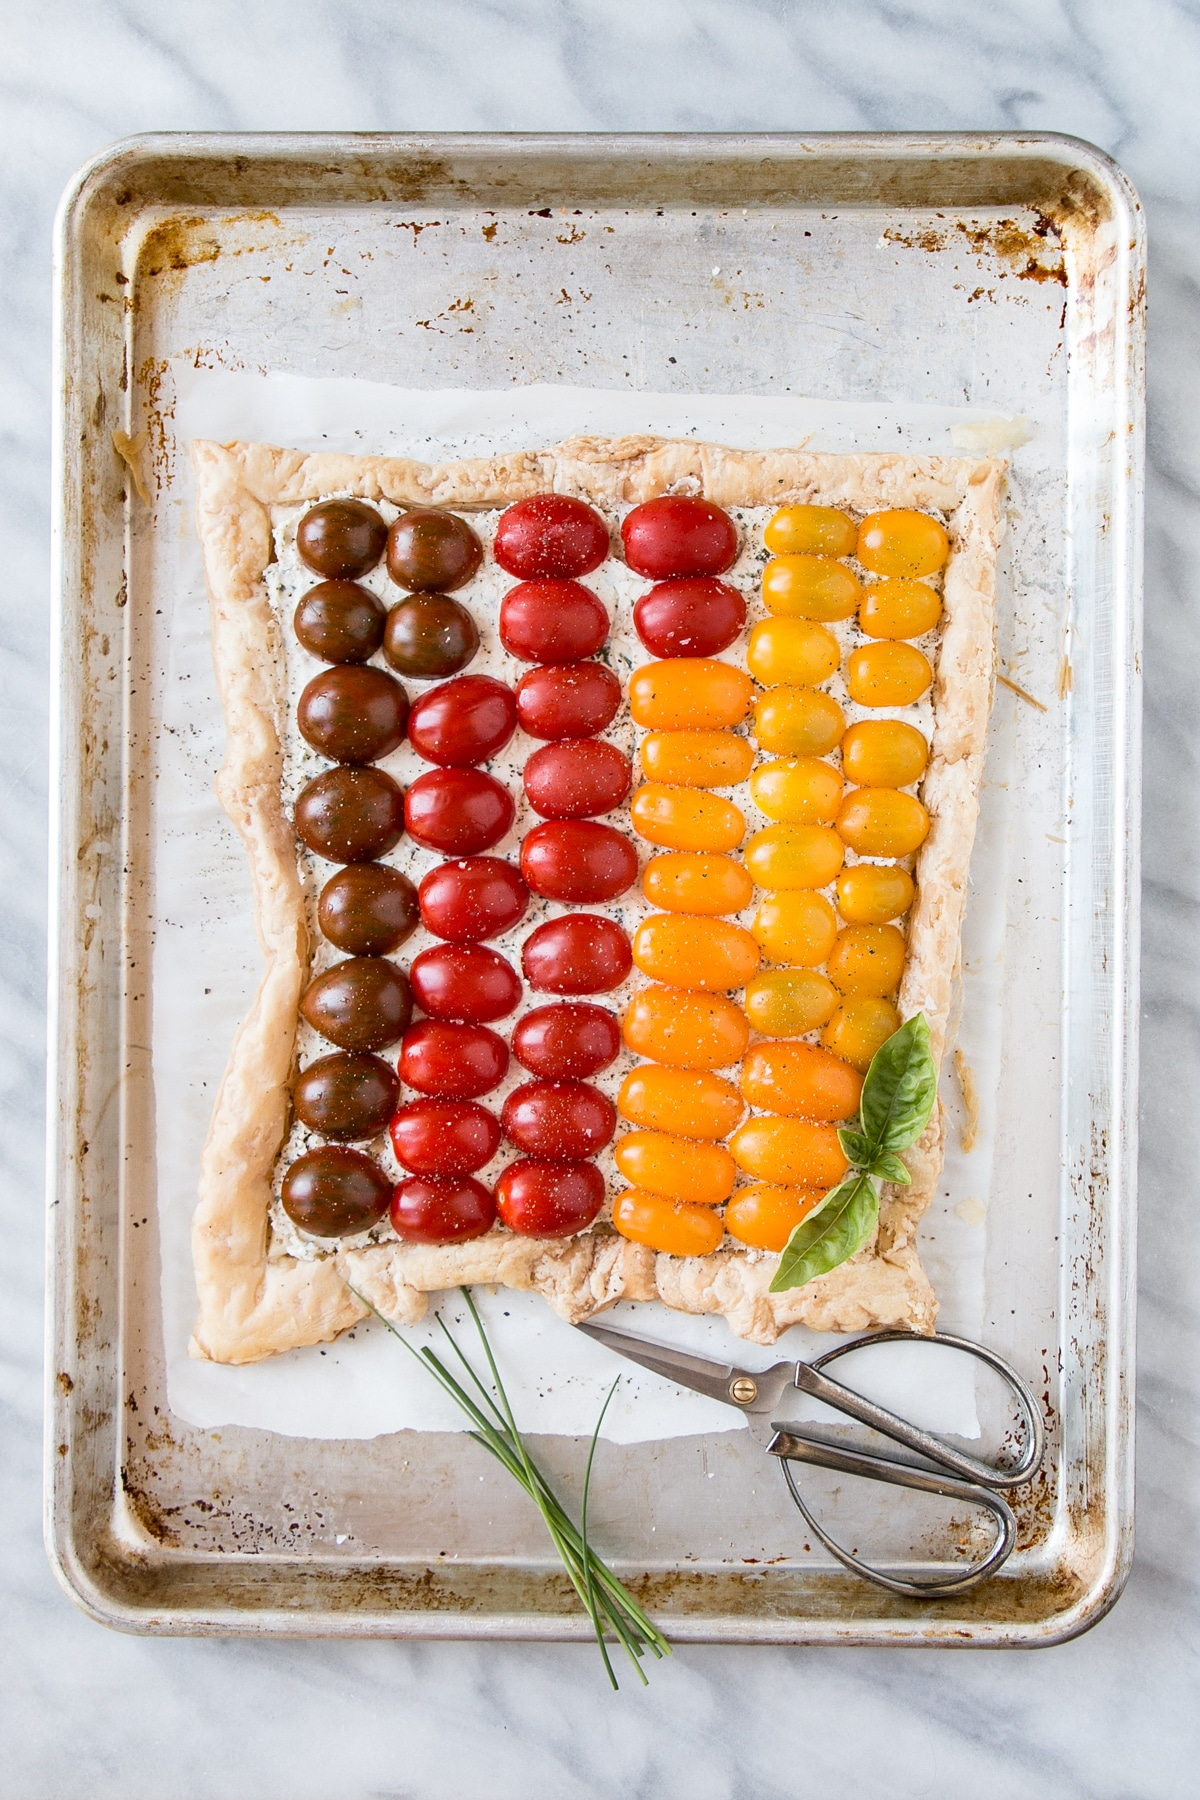 Tomato Tart on parchment paper with herbs.